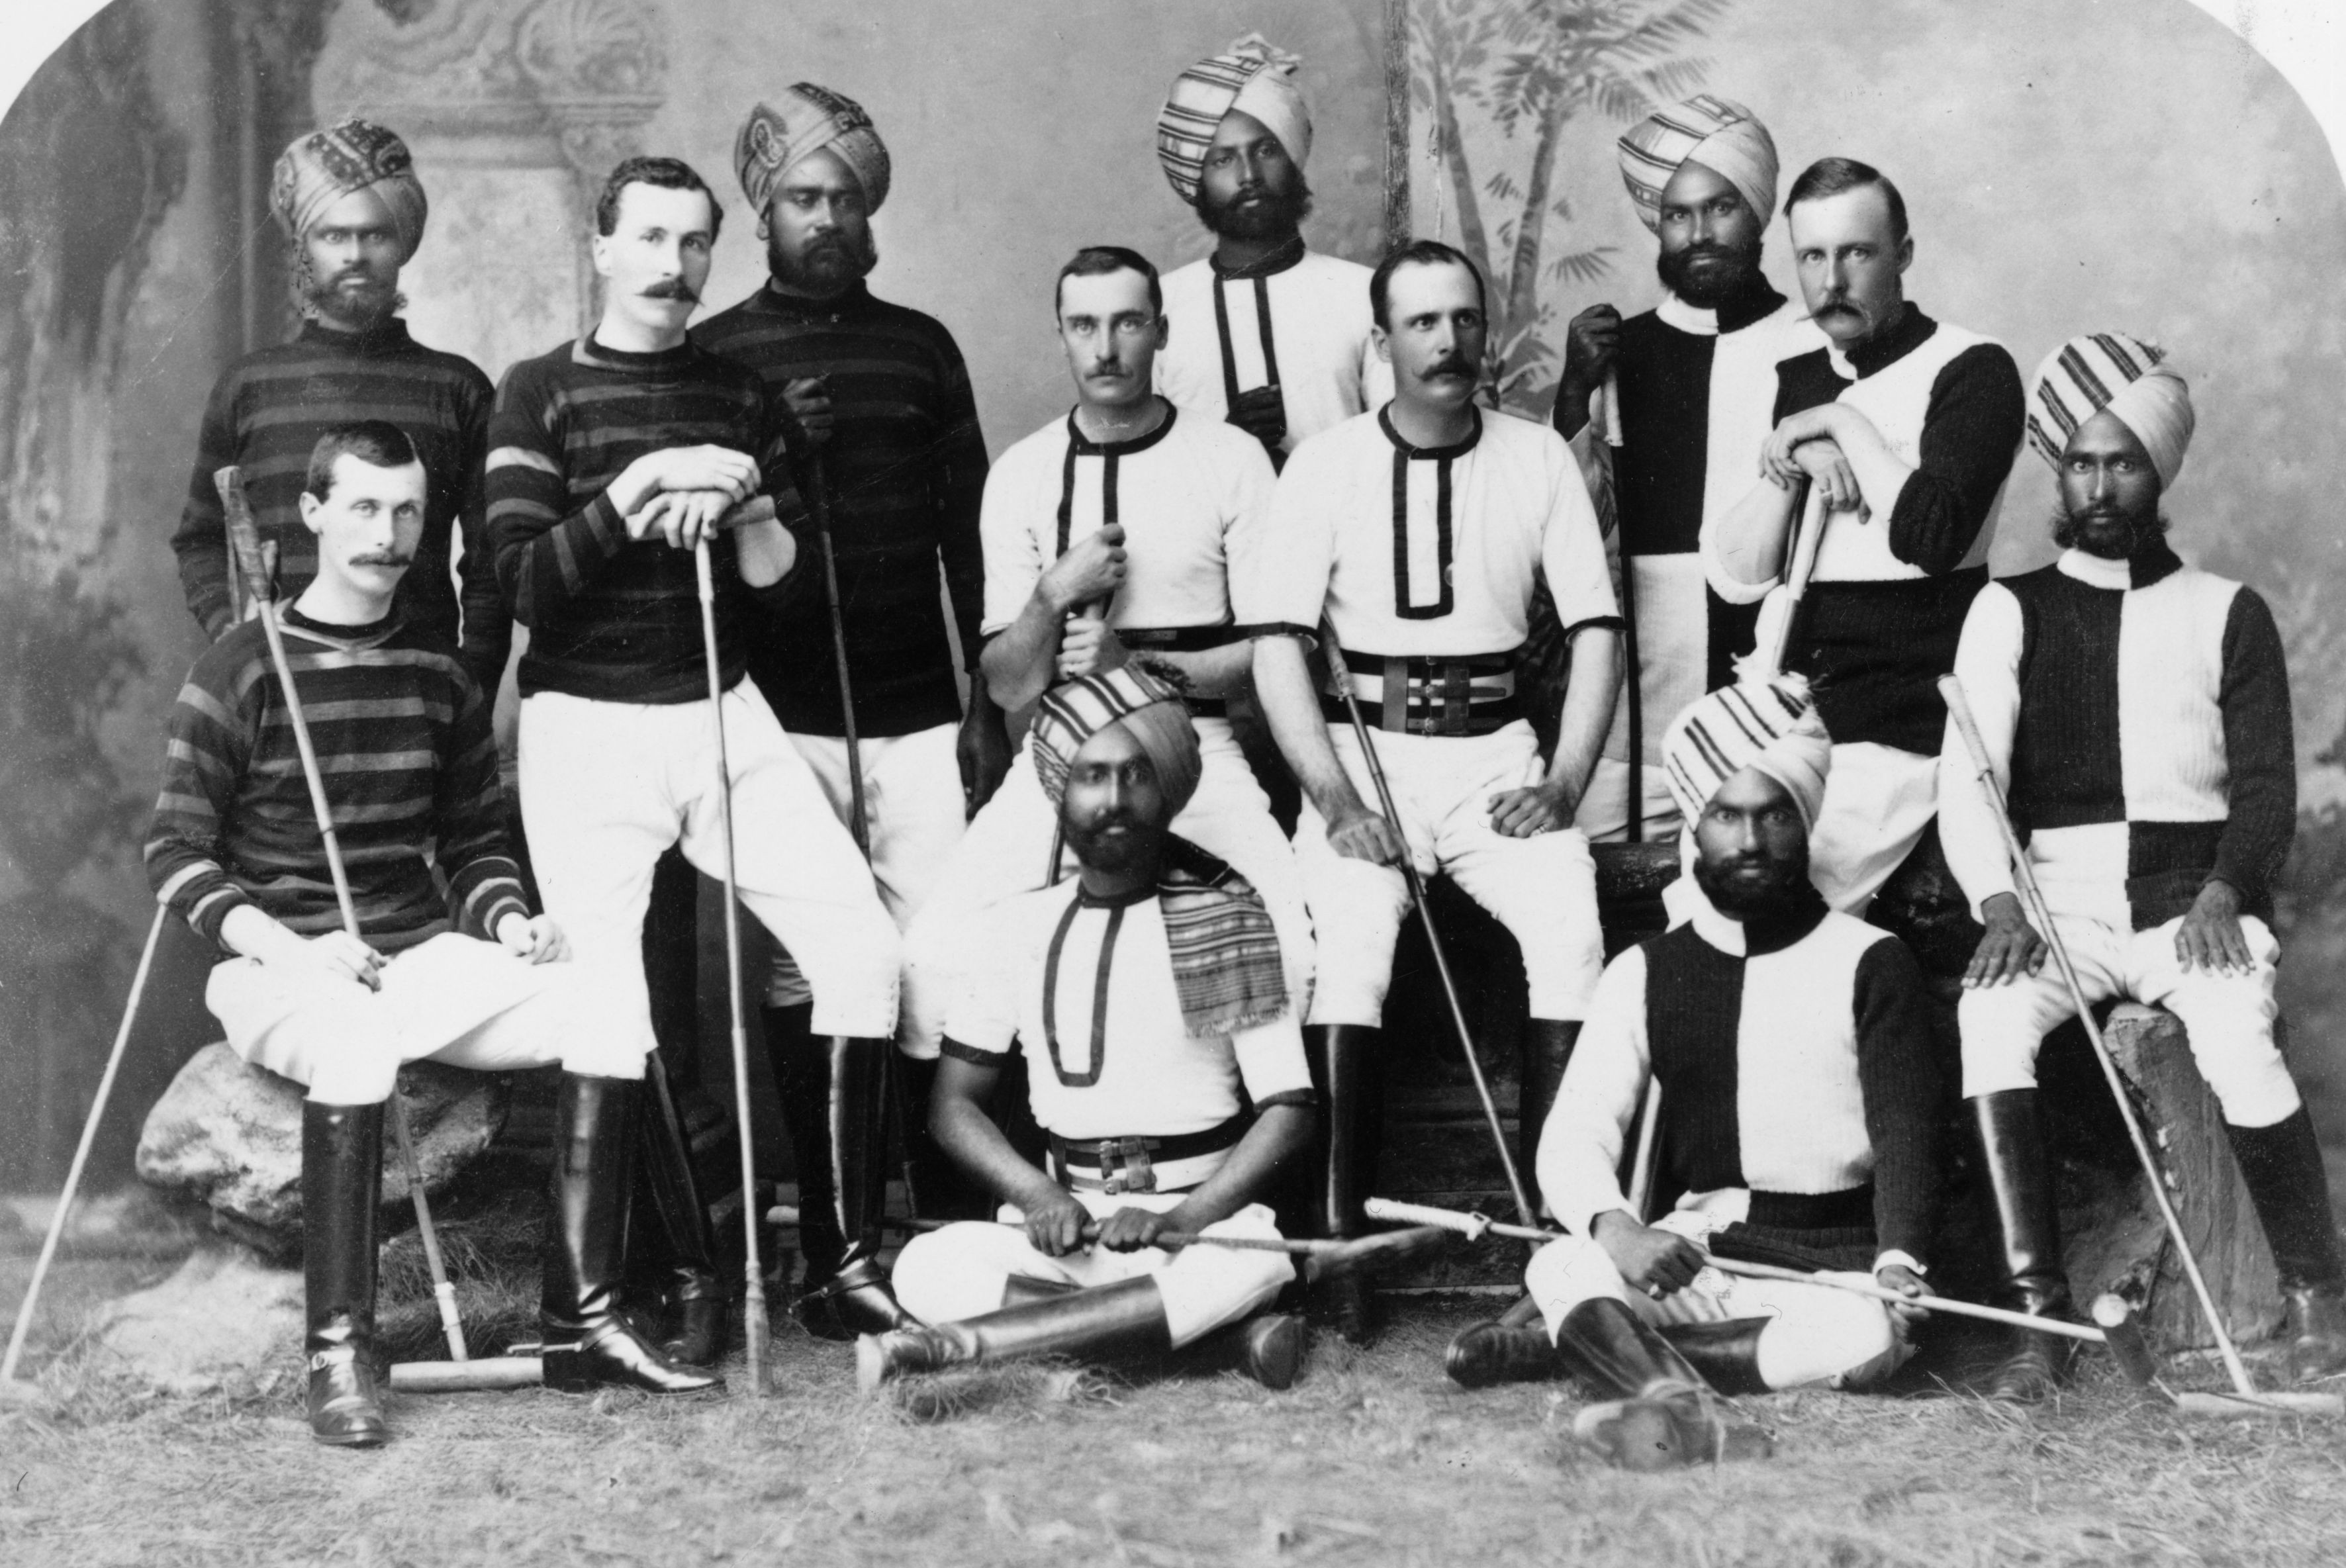 Indian princes and British Army officers in the Hyderabad contingent polo team, c1880. (Photo by Hulton Archive/Getty Images)